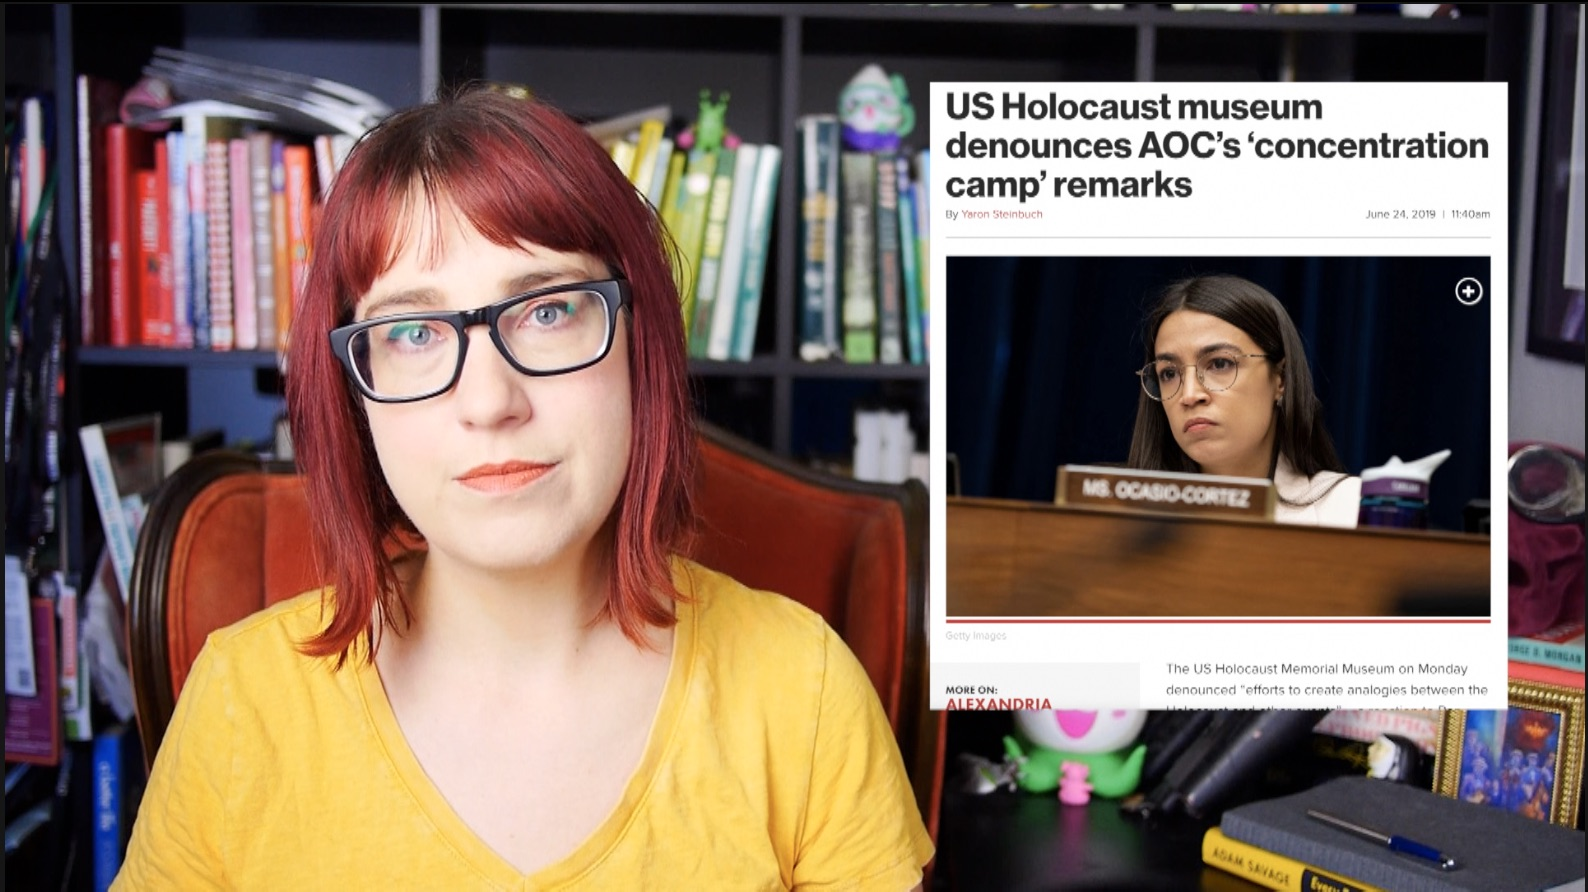 Kids are Dying in US Camps & the US Holocaust Museum is Wrong